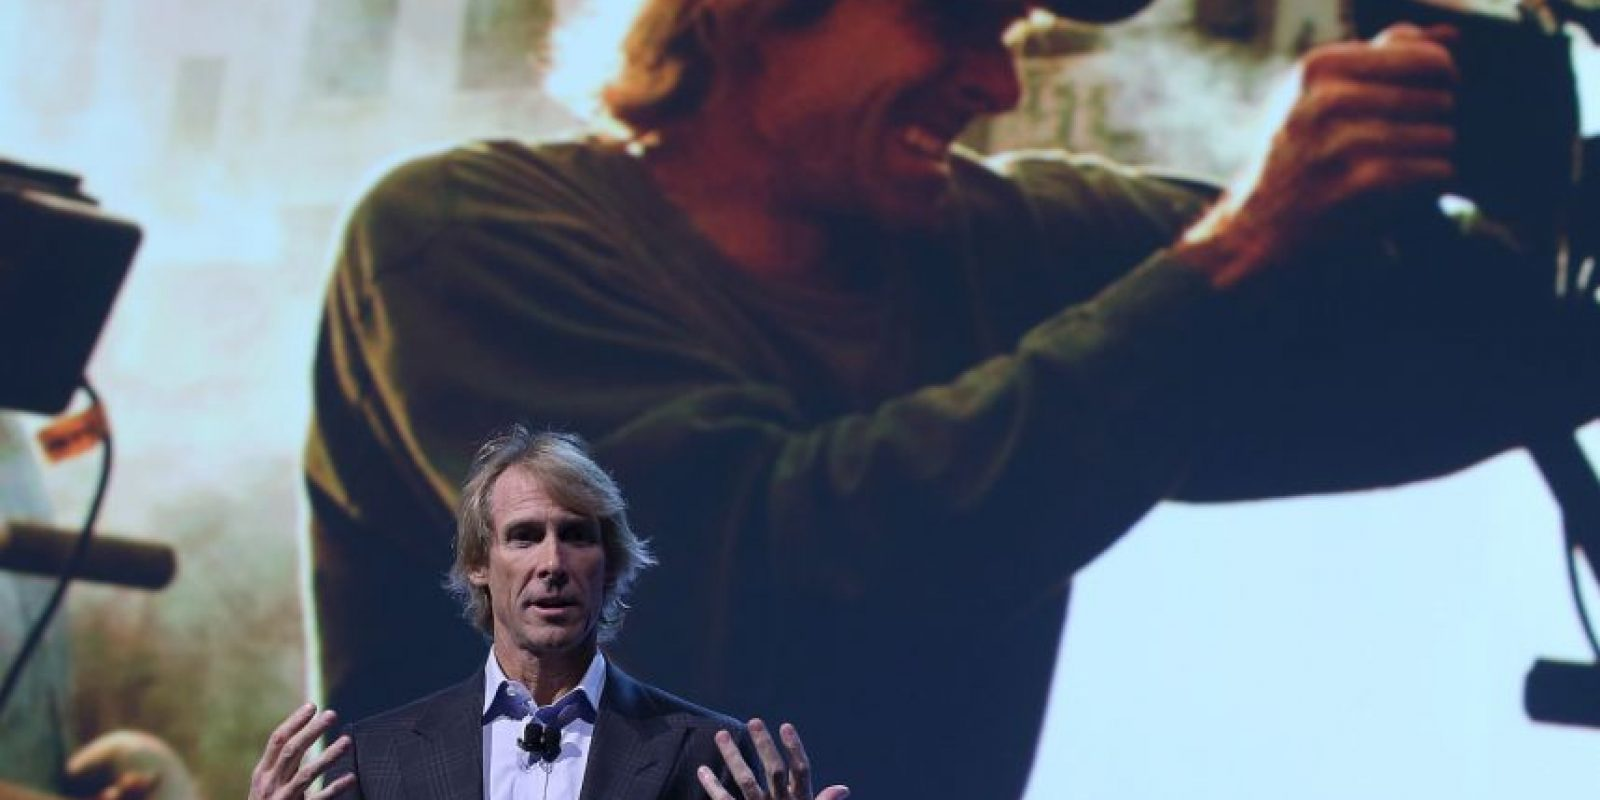 Michael Bay Foto:Getty Images